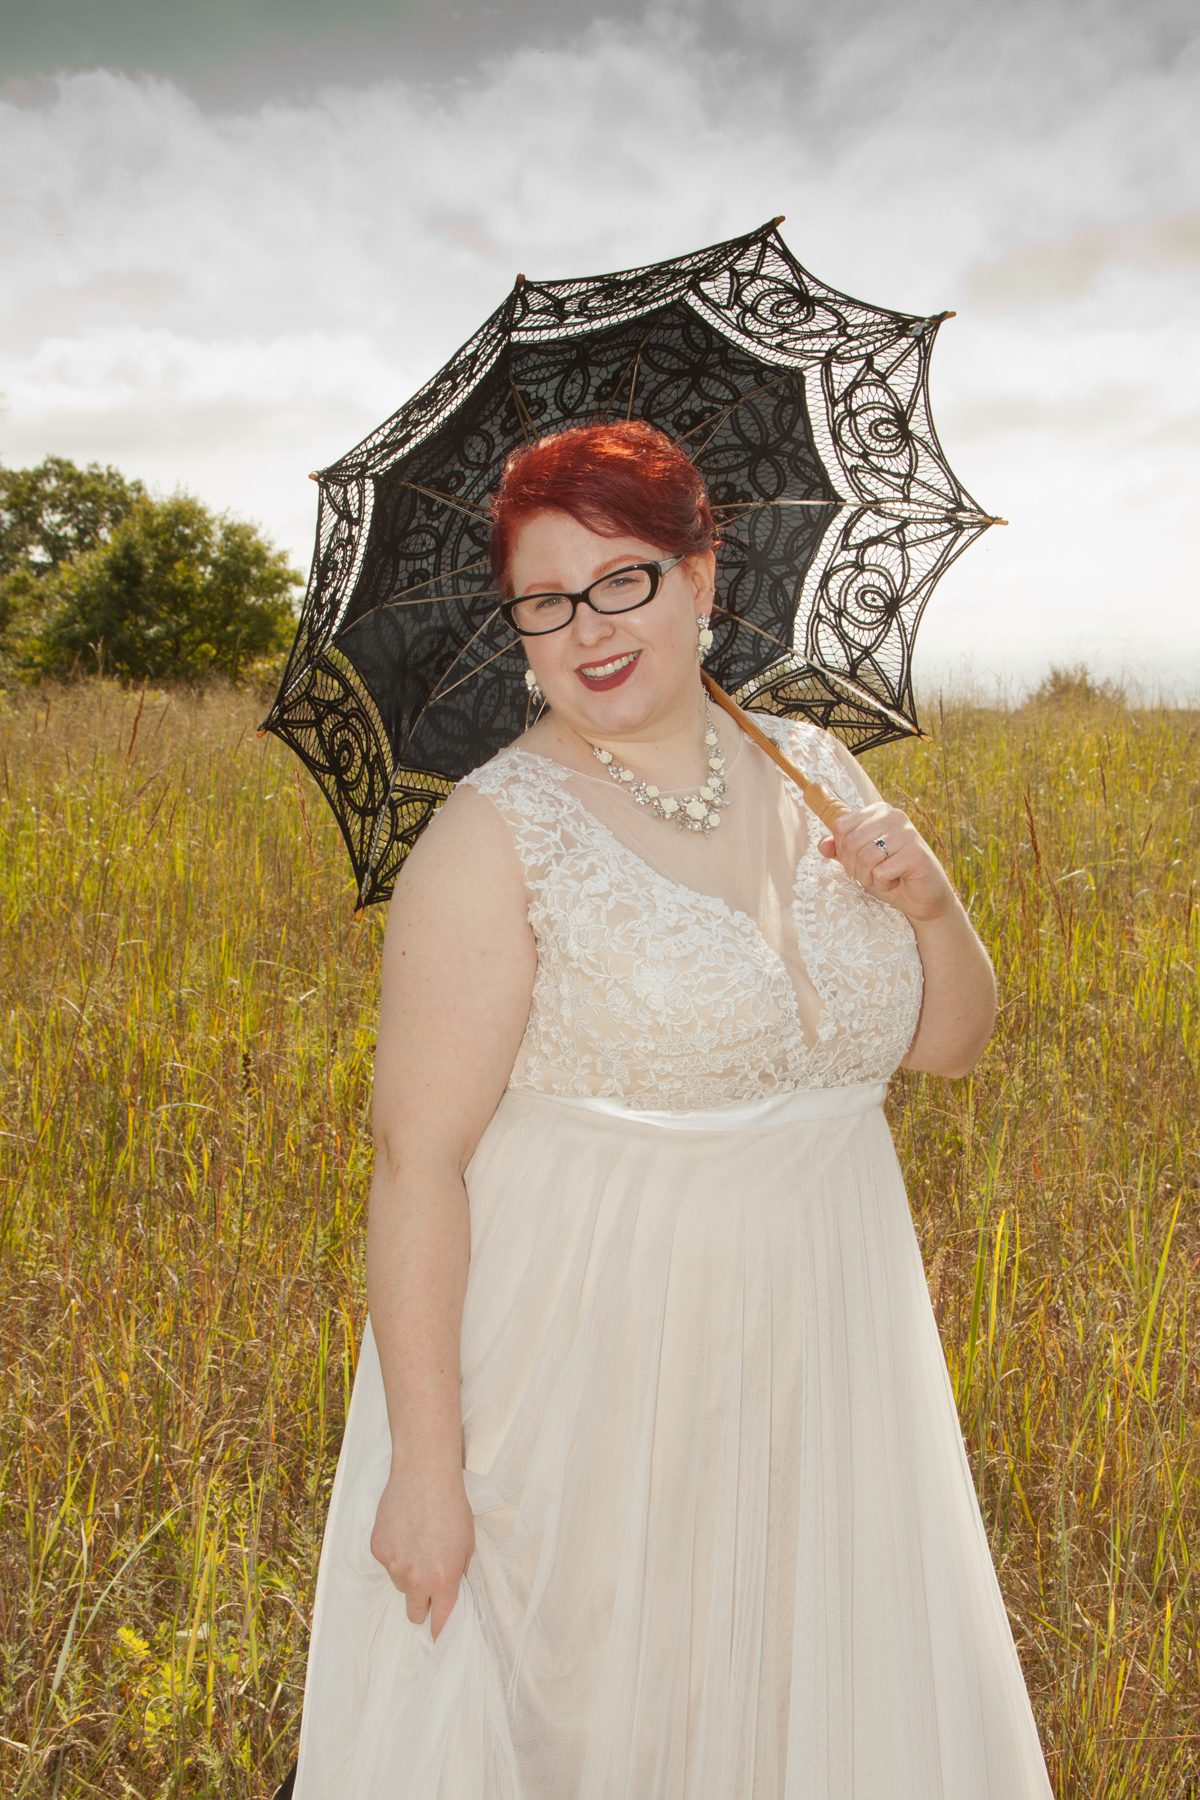 Ashley's unique style and her own special props made for a wedding experience not be forgotten.